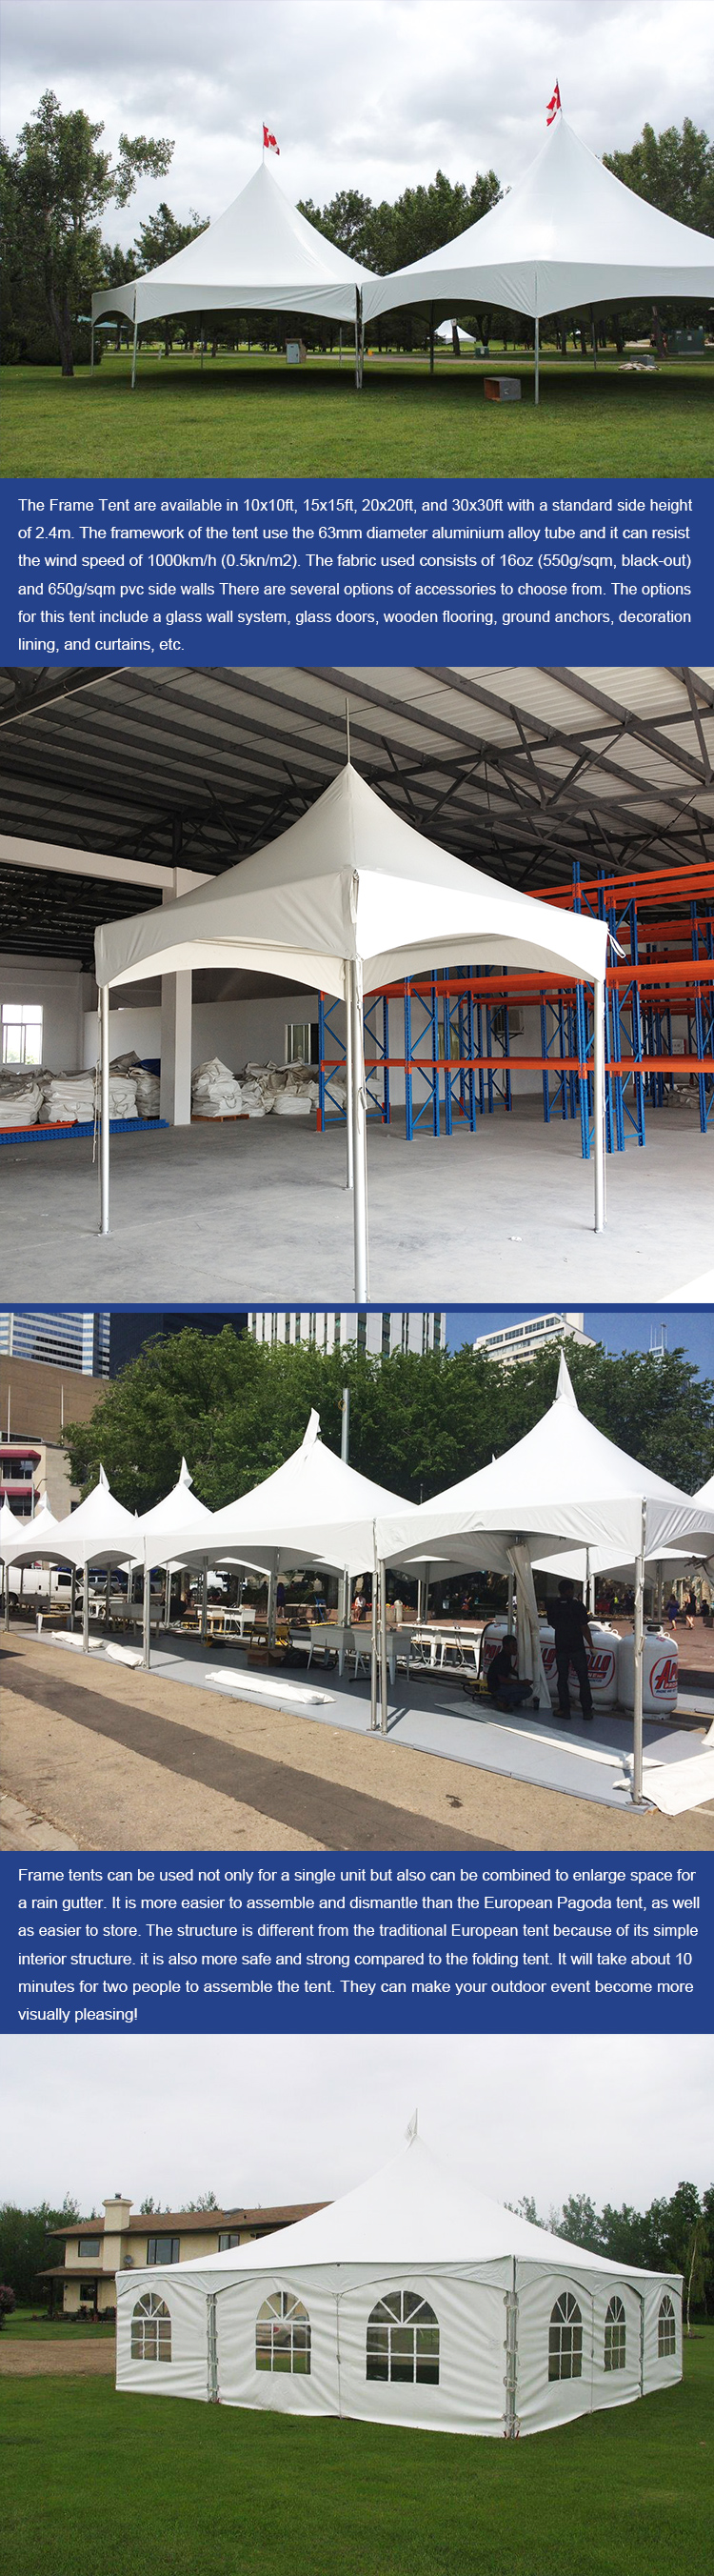 COSCO reliable frame tents for sale anti-mosquito